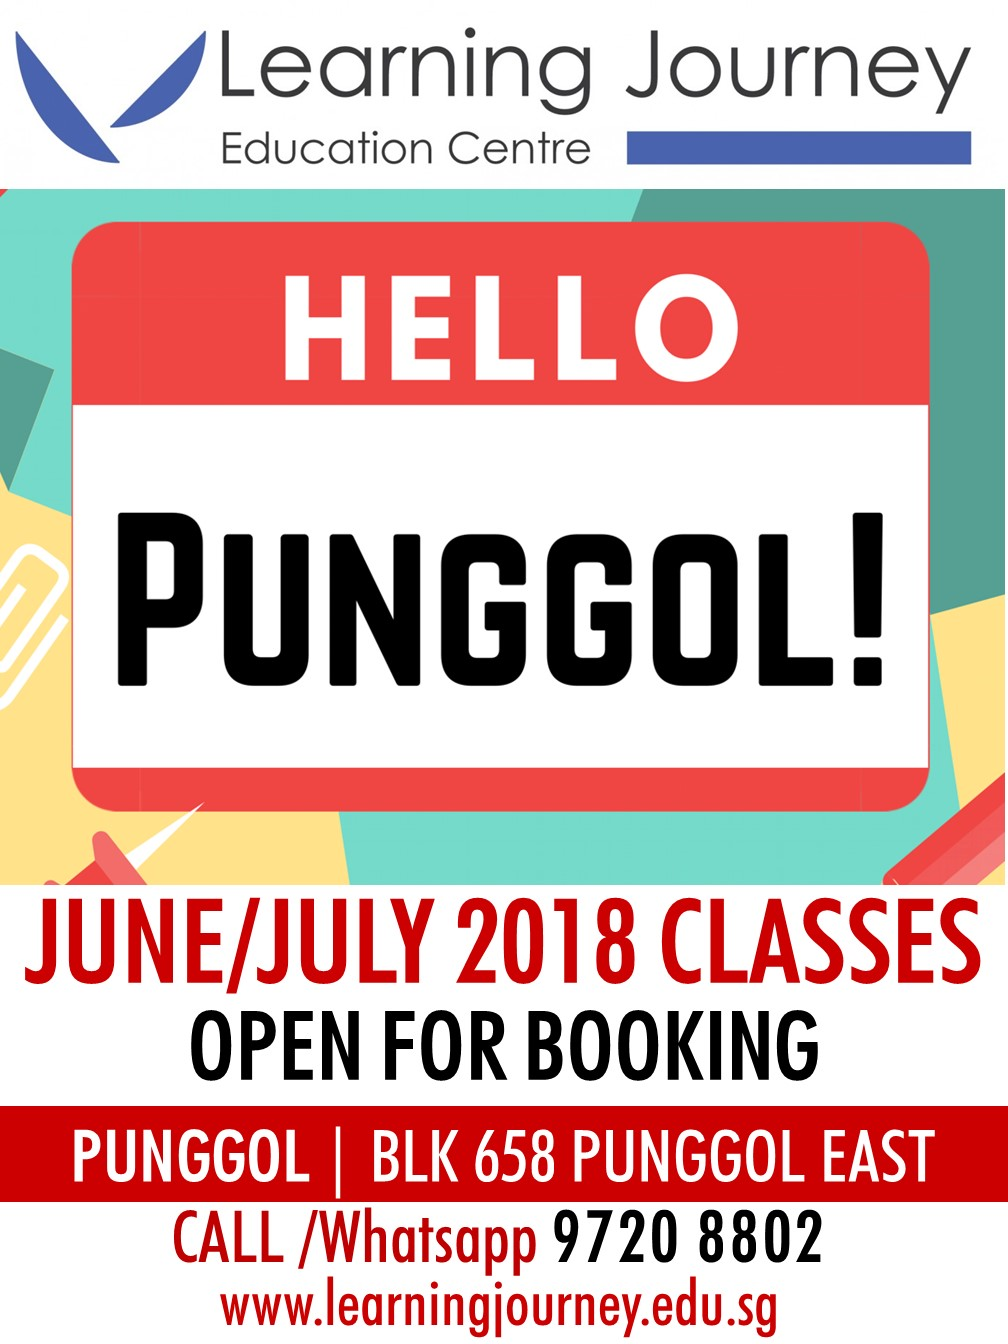 Punggol East Learning Journey Education Centre